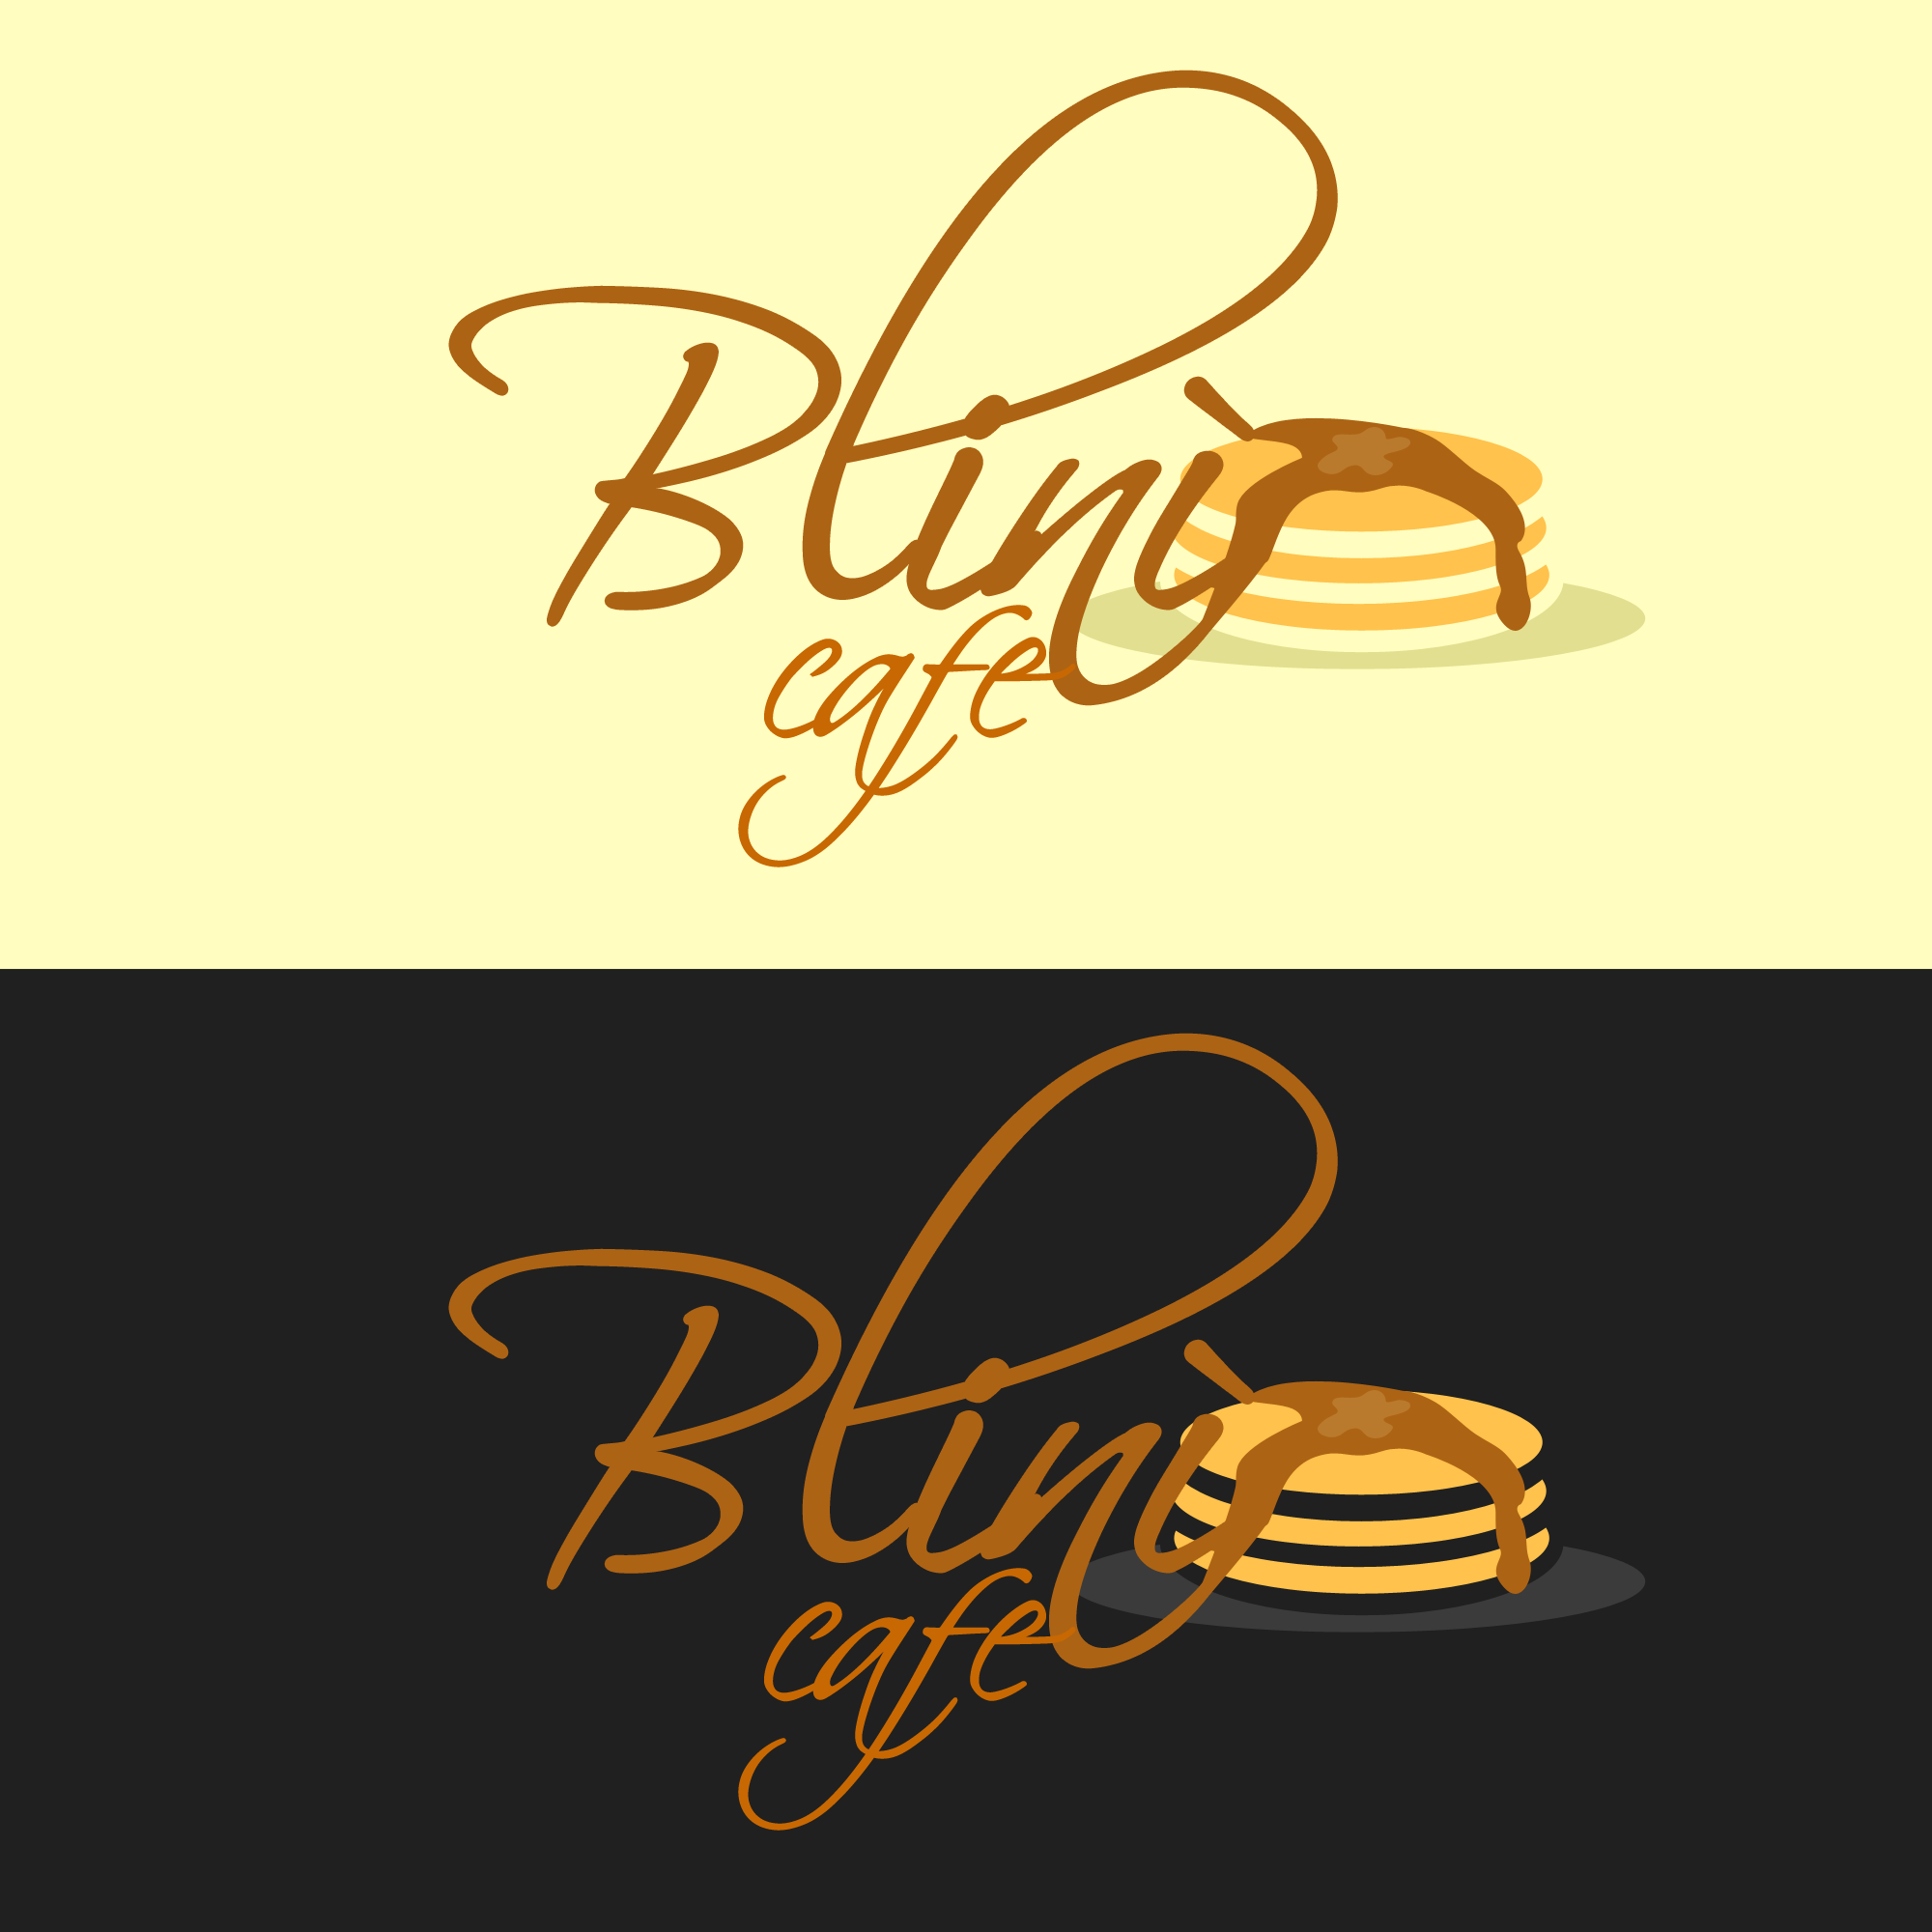 Logo Design by Kenneth Joel - Entry No. 87 in the Logo Design Contest Creative Logo Design for Blinì.